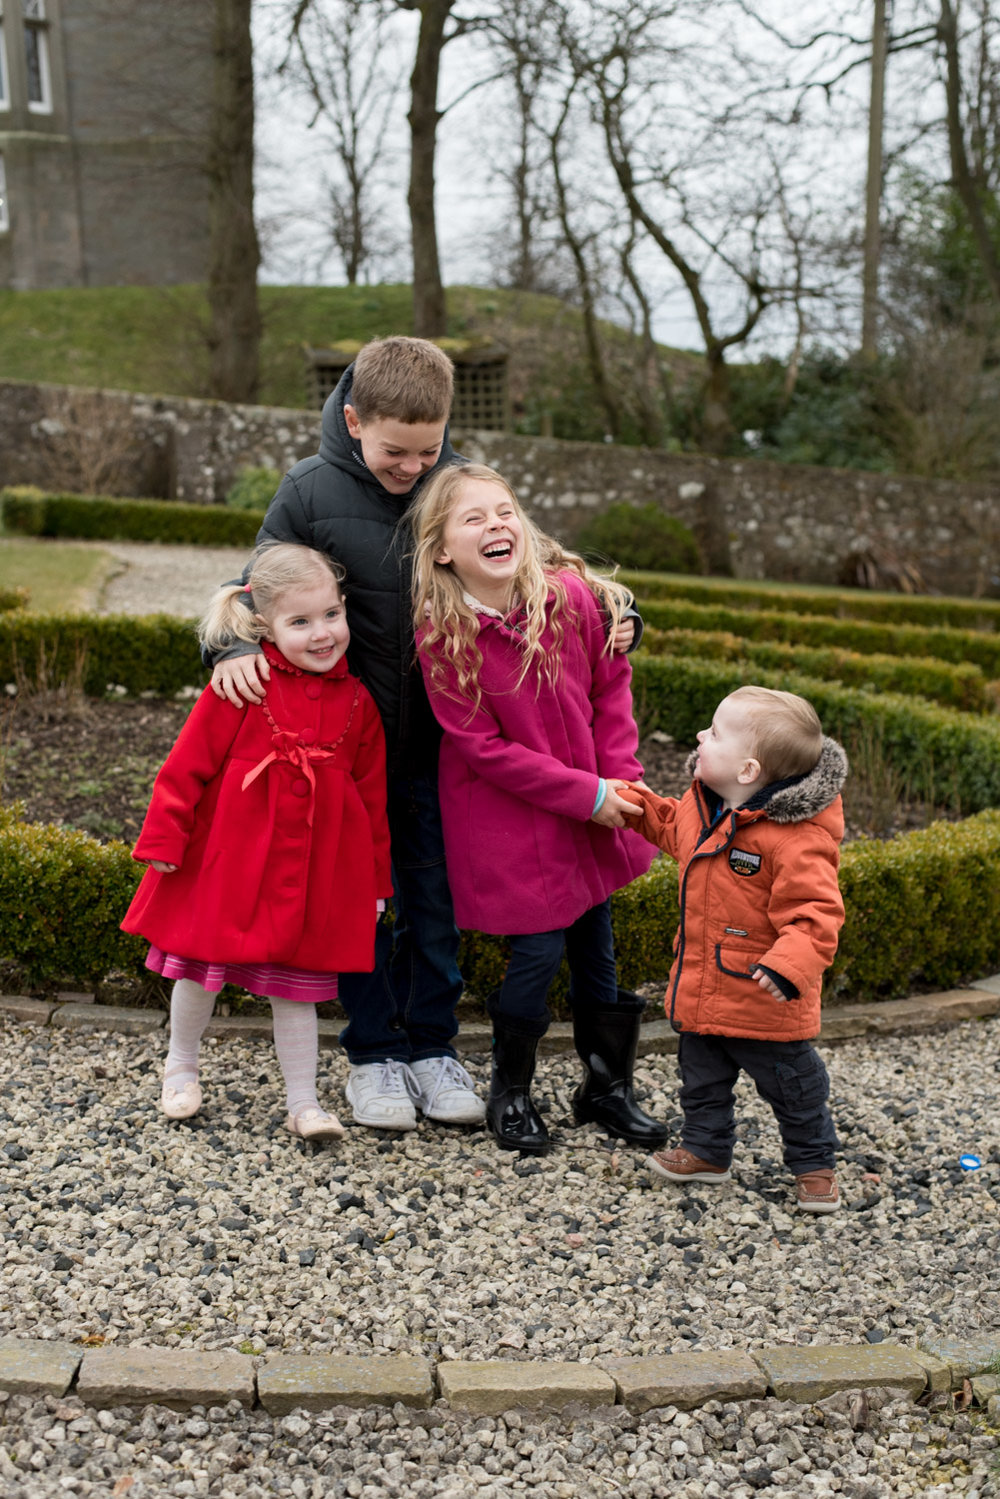 Family Photo Shoot In Dunfermline - cousins together